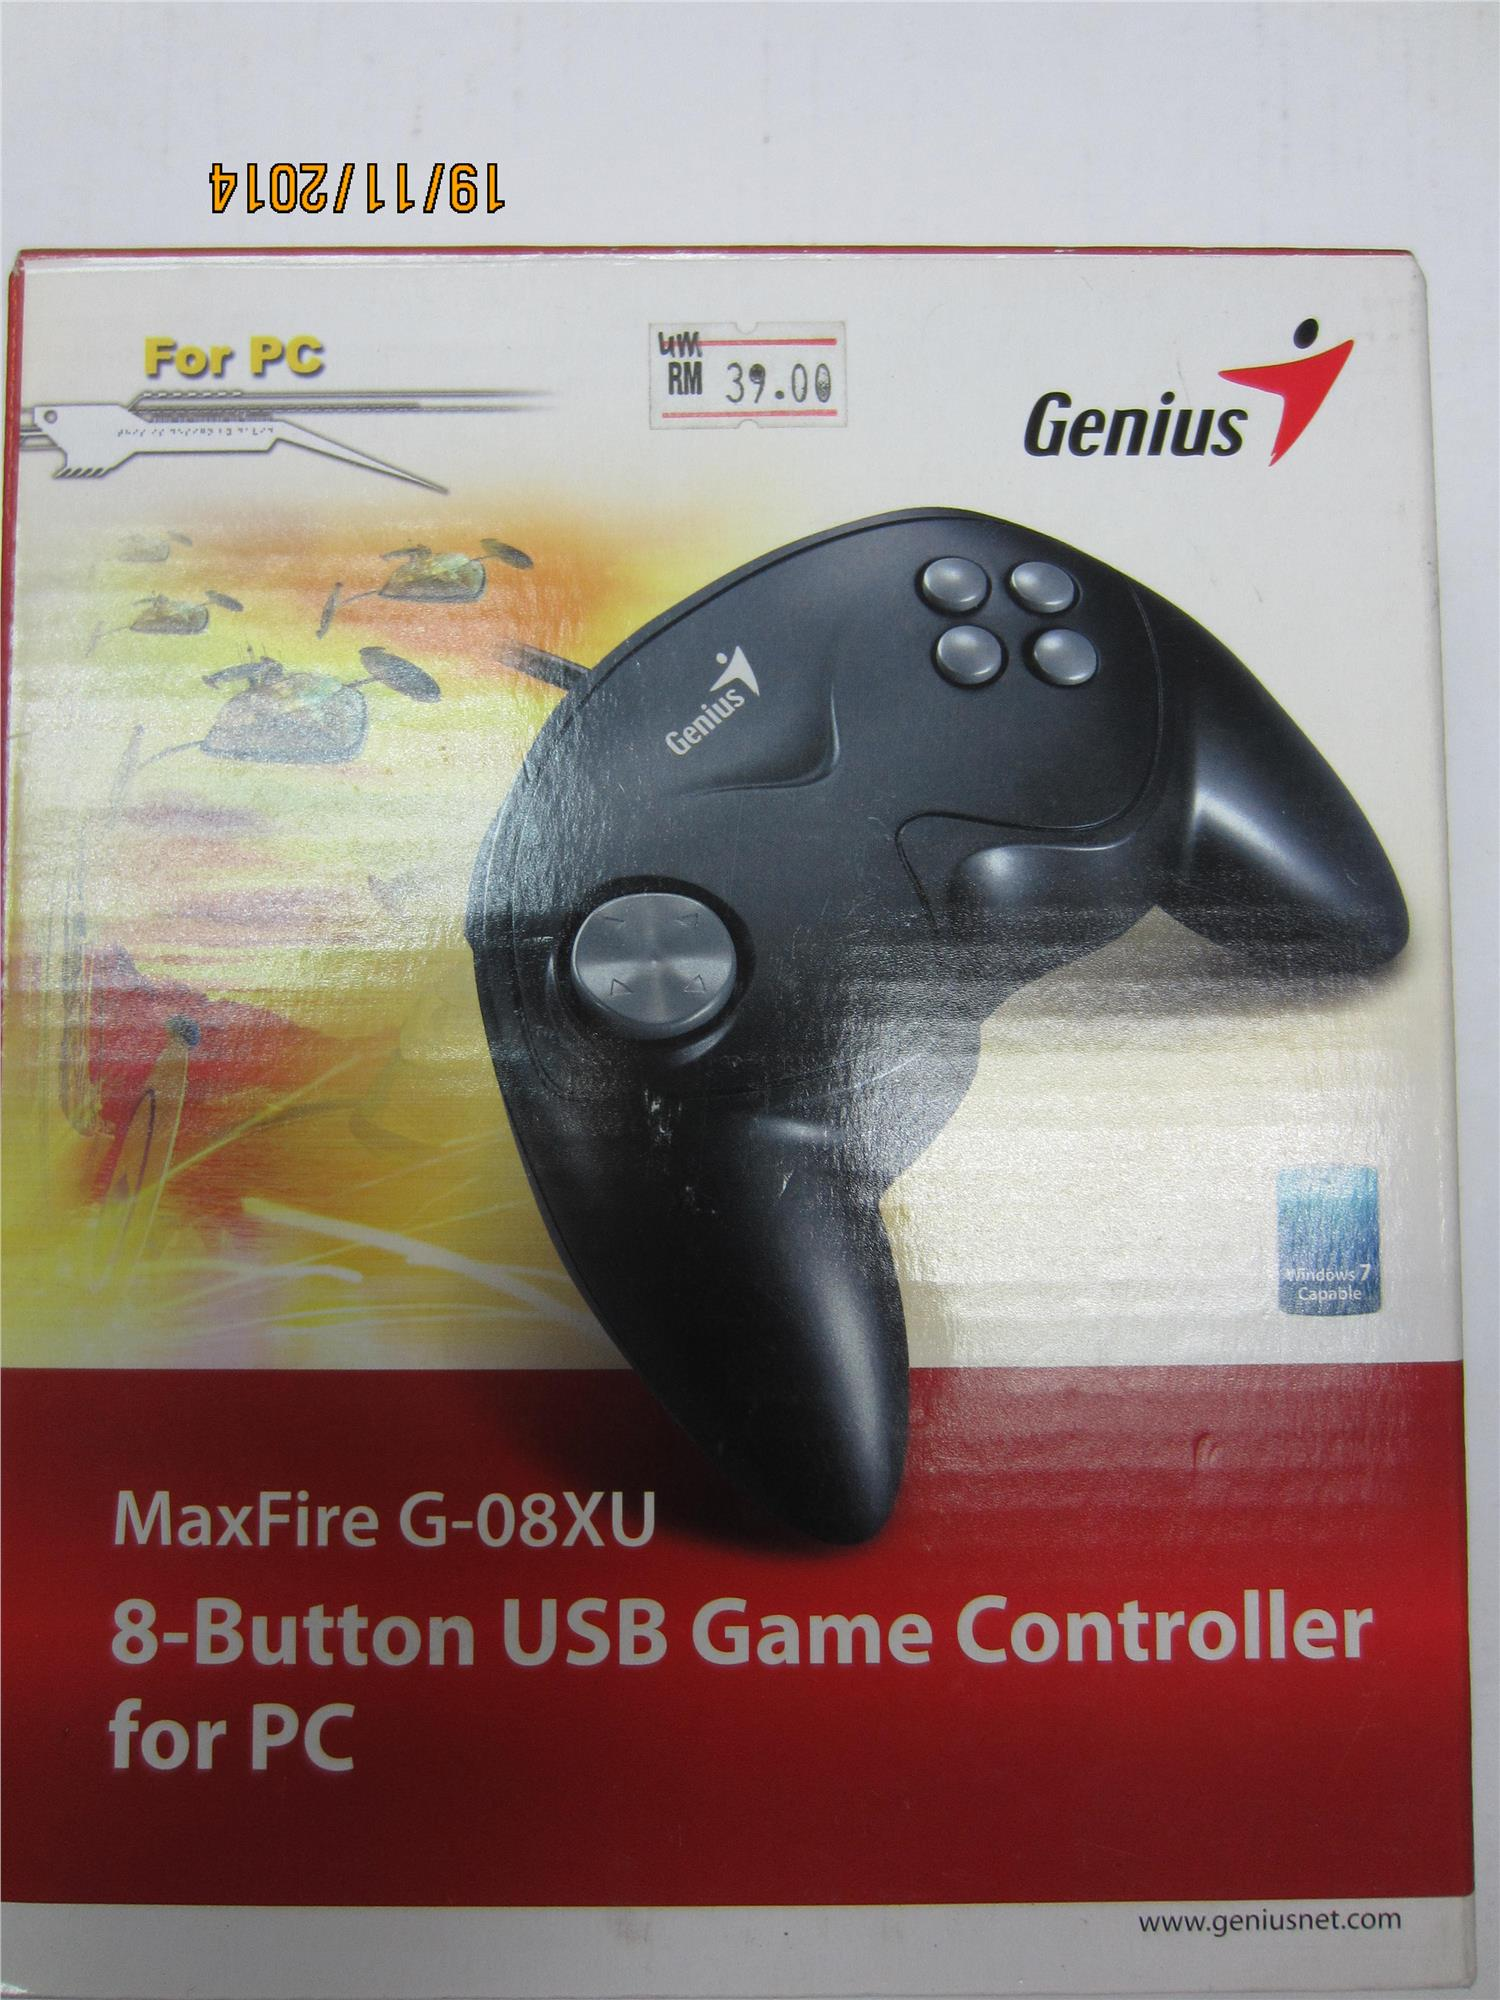 MAXFIRE G-08XU DRIVERS FOR WINDOWS VISTA